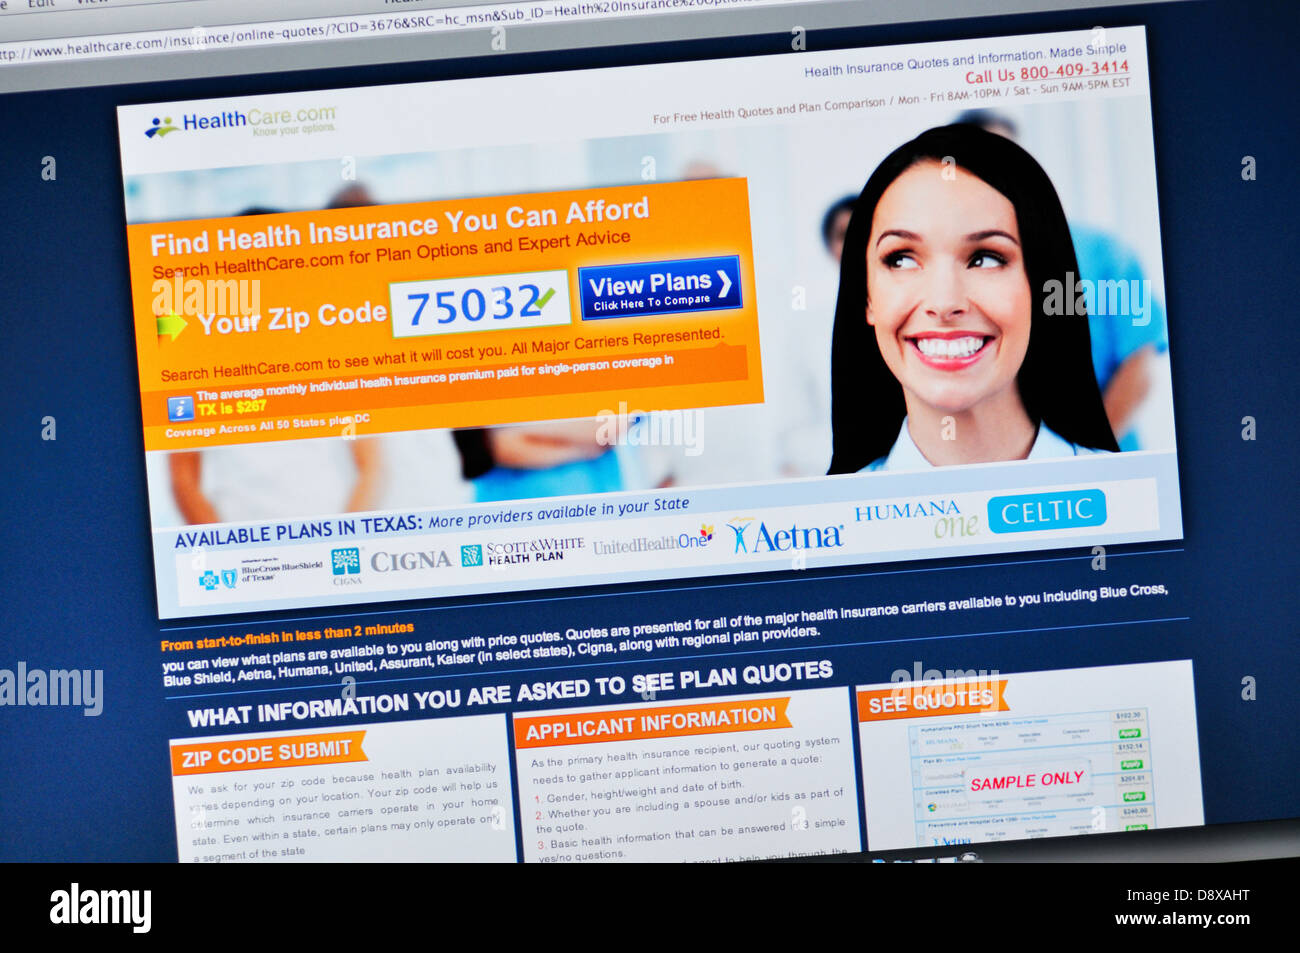 Online Health Insurance Quotes Healthcare Website  Online Health Insurance Quotes Stock